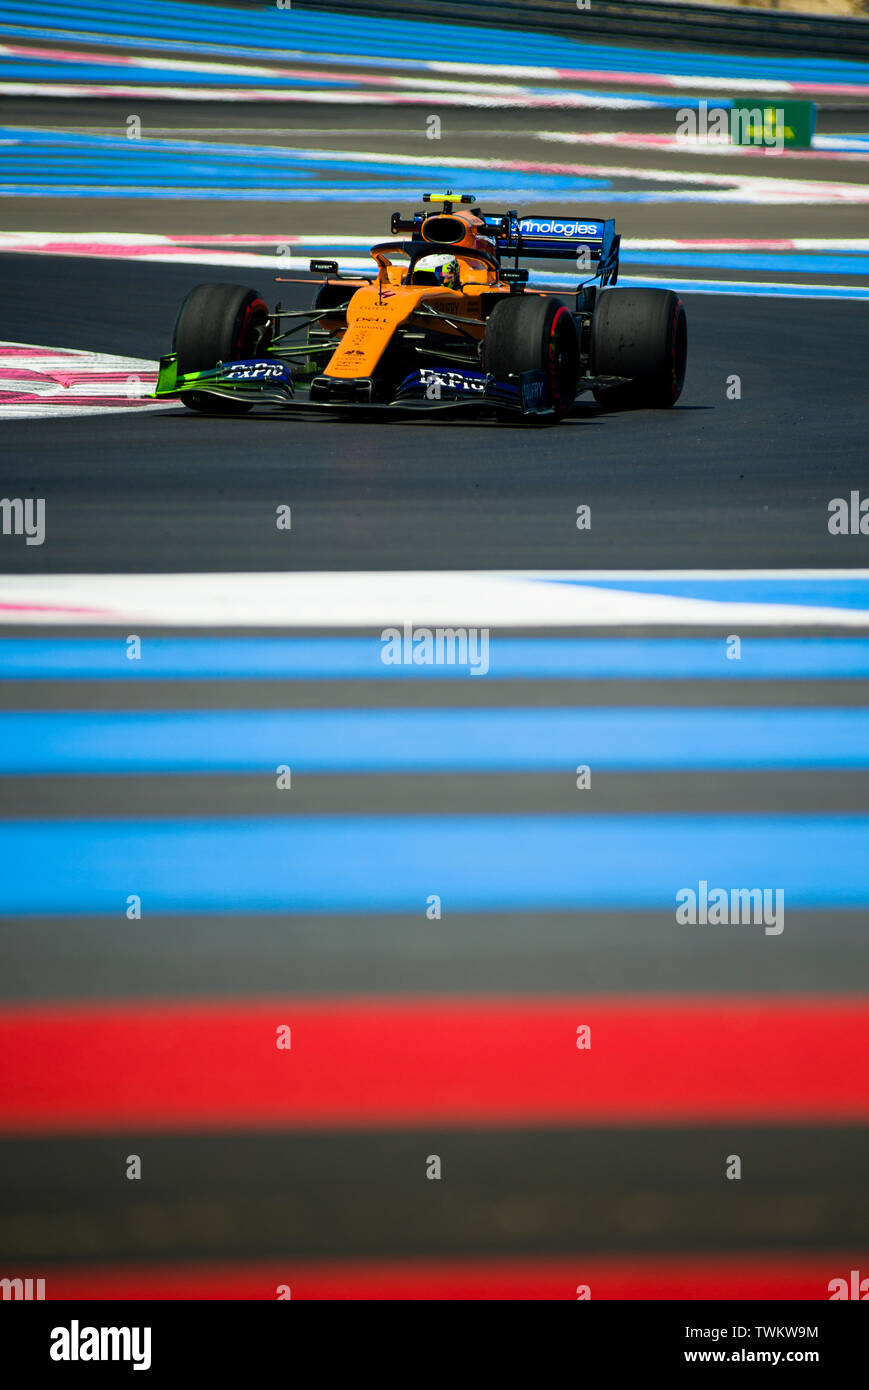 Marseille, France. 21st June 2019, Circuit Automobile Paul Ricard, Le Castellet, Marseille, France ; FIA Formula 1 Grand Prix of France, practise sessions; Lando Norris of the Mclaren Team in action during free practice 1 Credit: Action Plus Sports Images/Alamy Live News Stock Photo